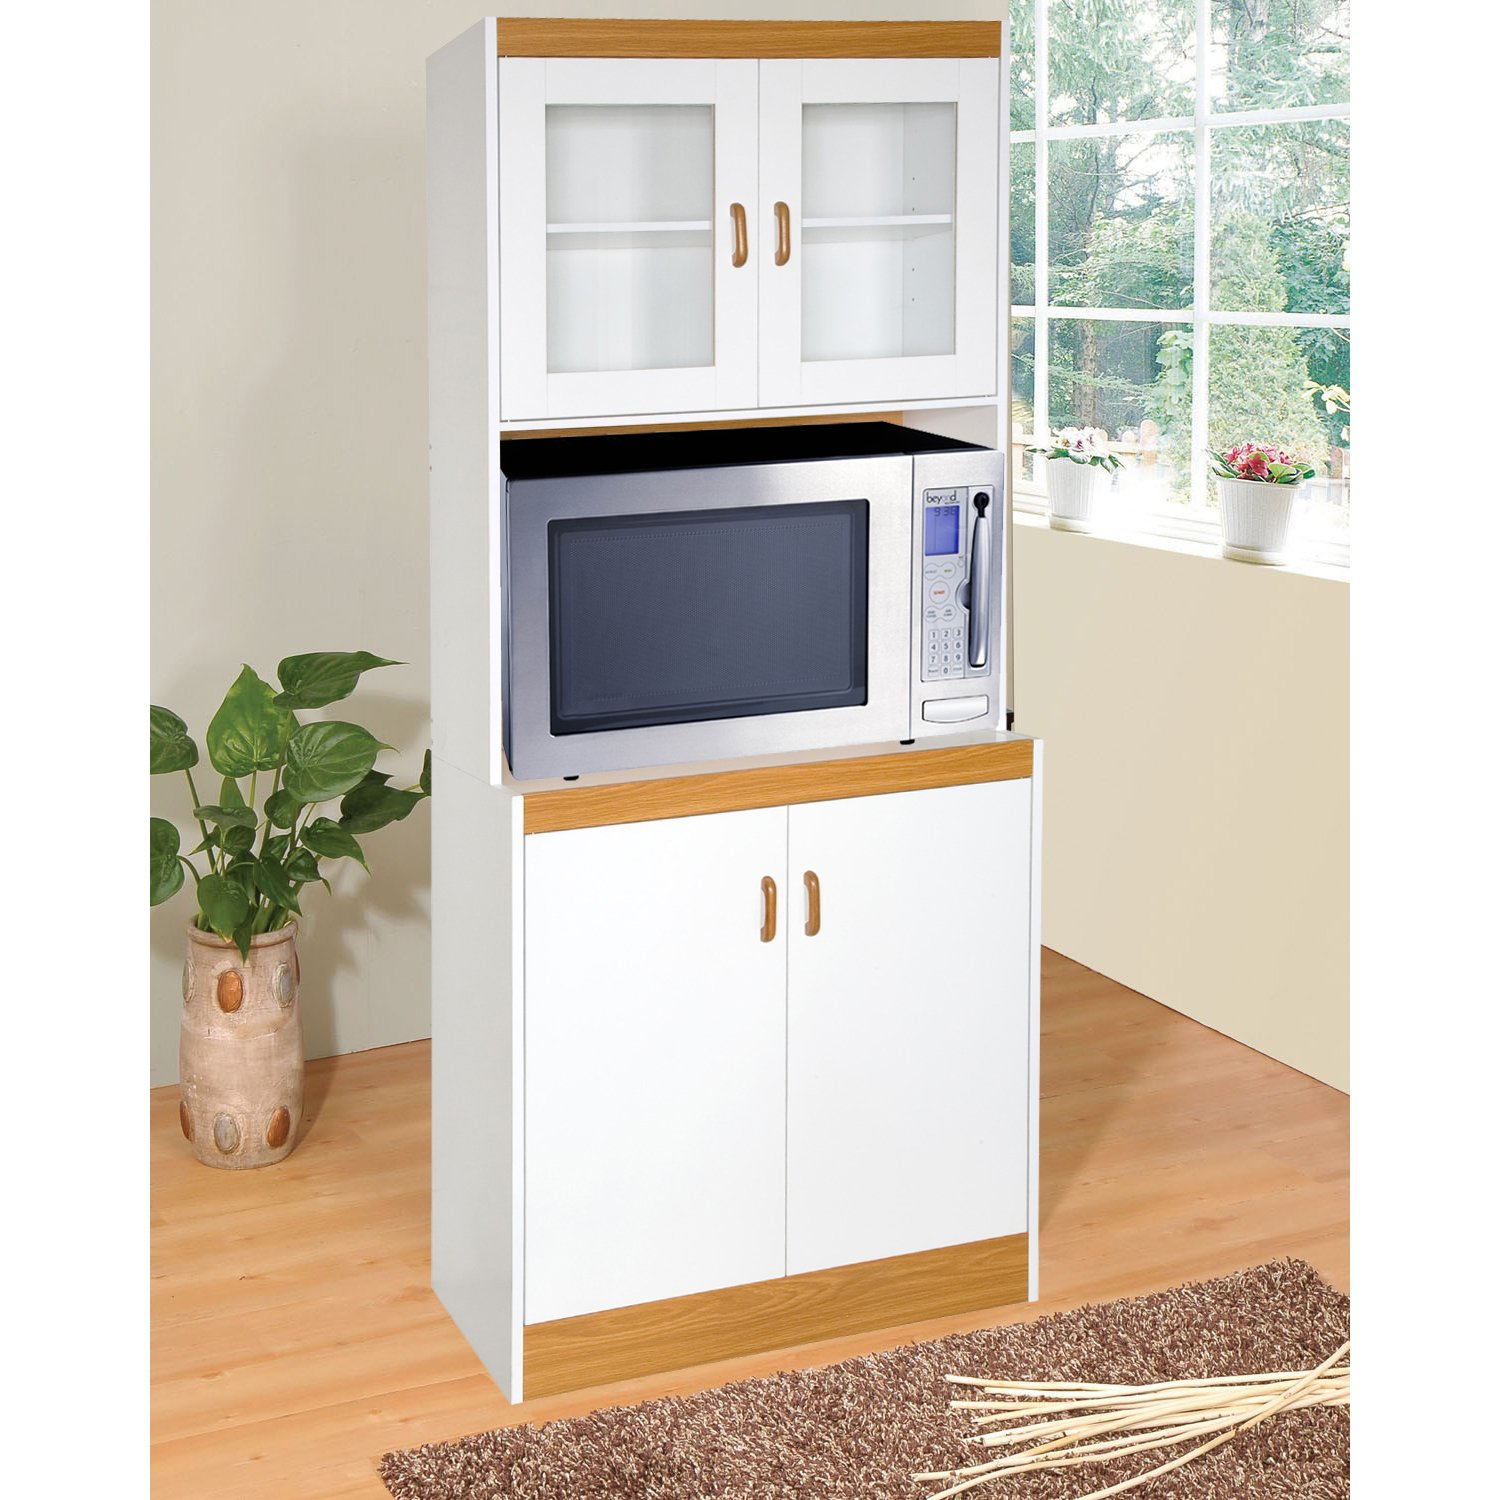 Amazon.com   Home Source Industries   153BRD   Tall Kitchen Microwave Cart    Cabinets, Shelf And Glass Doors   White With Light Wood Trim   Kitchen  Islands ...